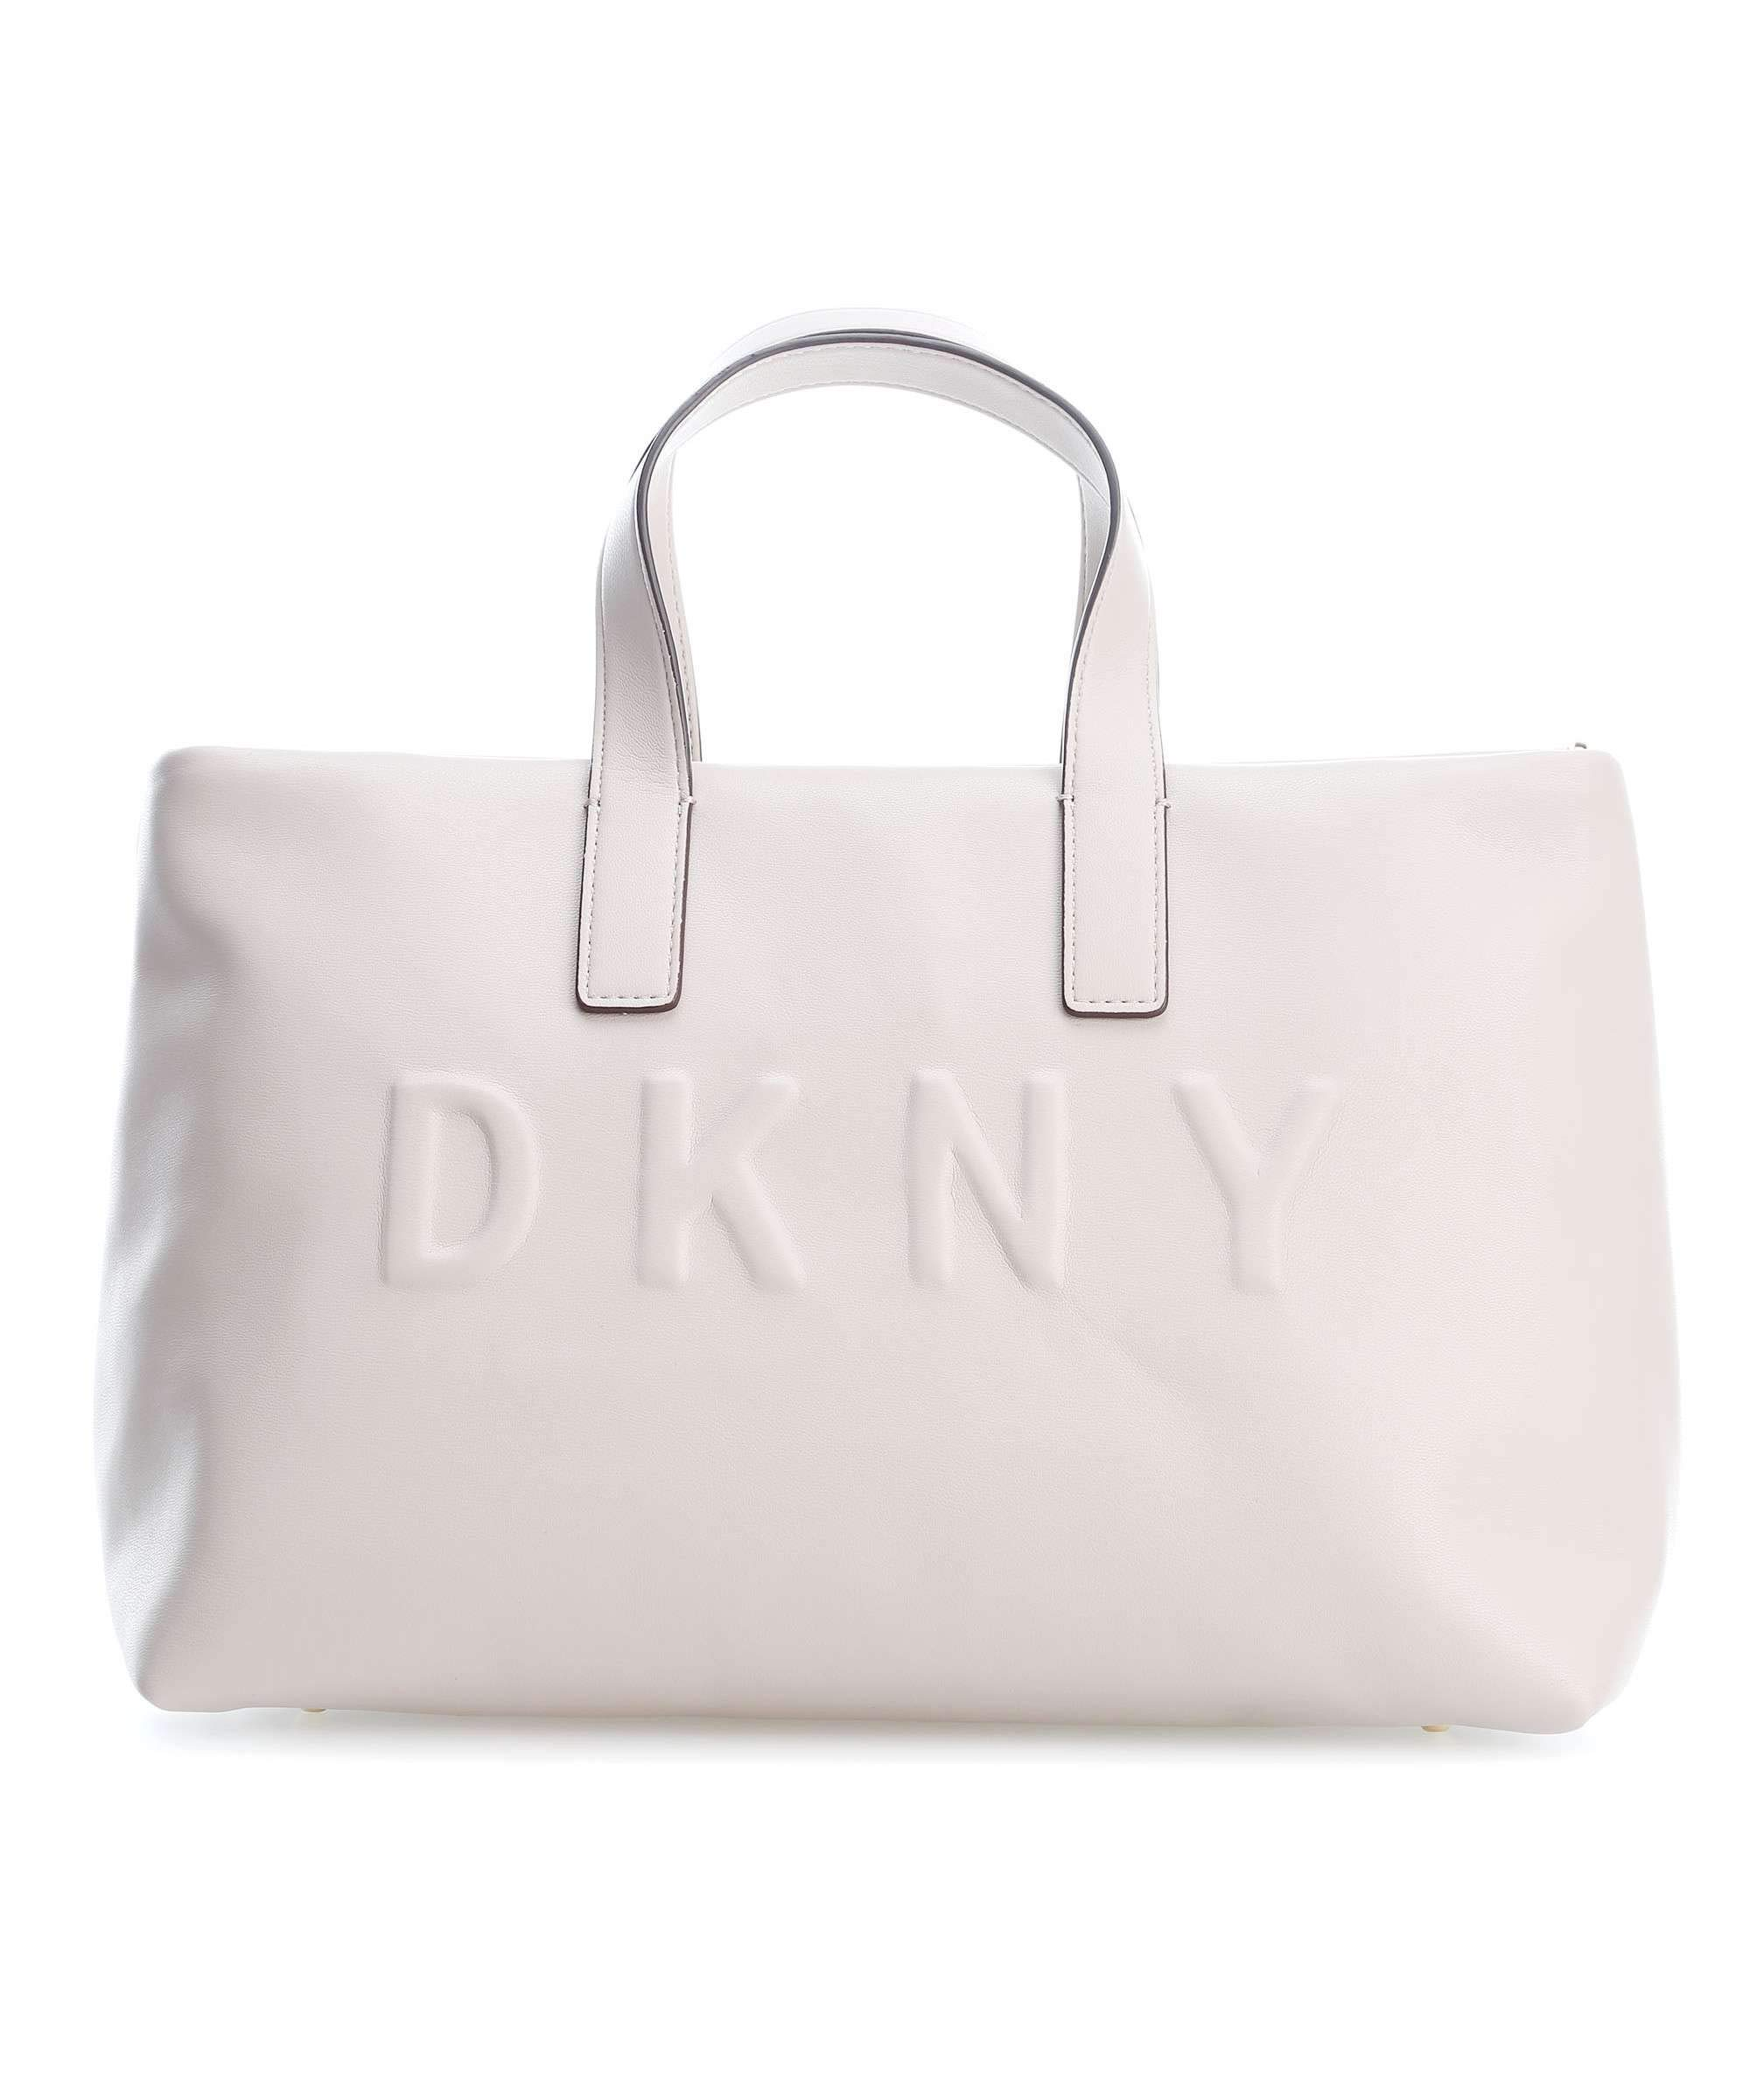 a77713e54e6 Dkny Bags Top Deals   Lowest Price   SuperOffers.com